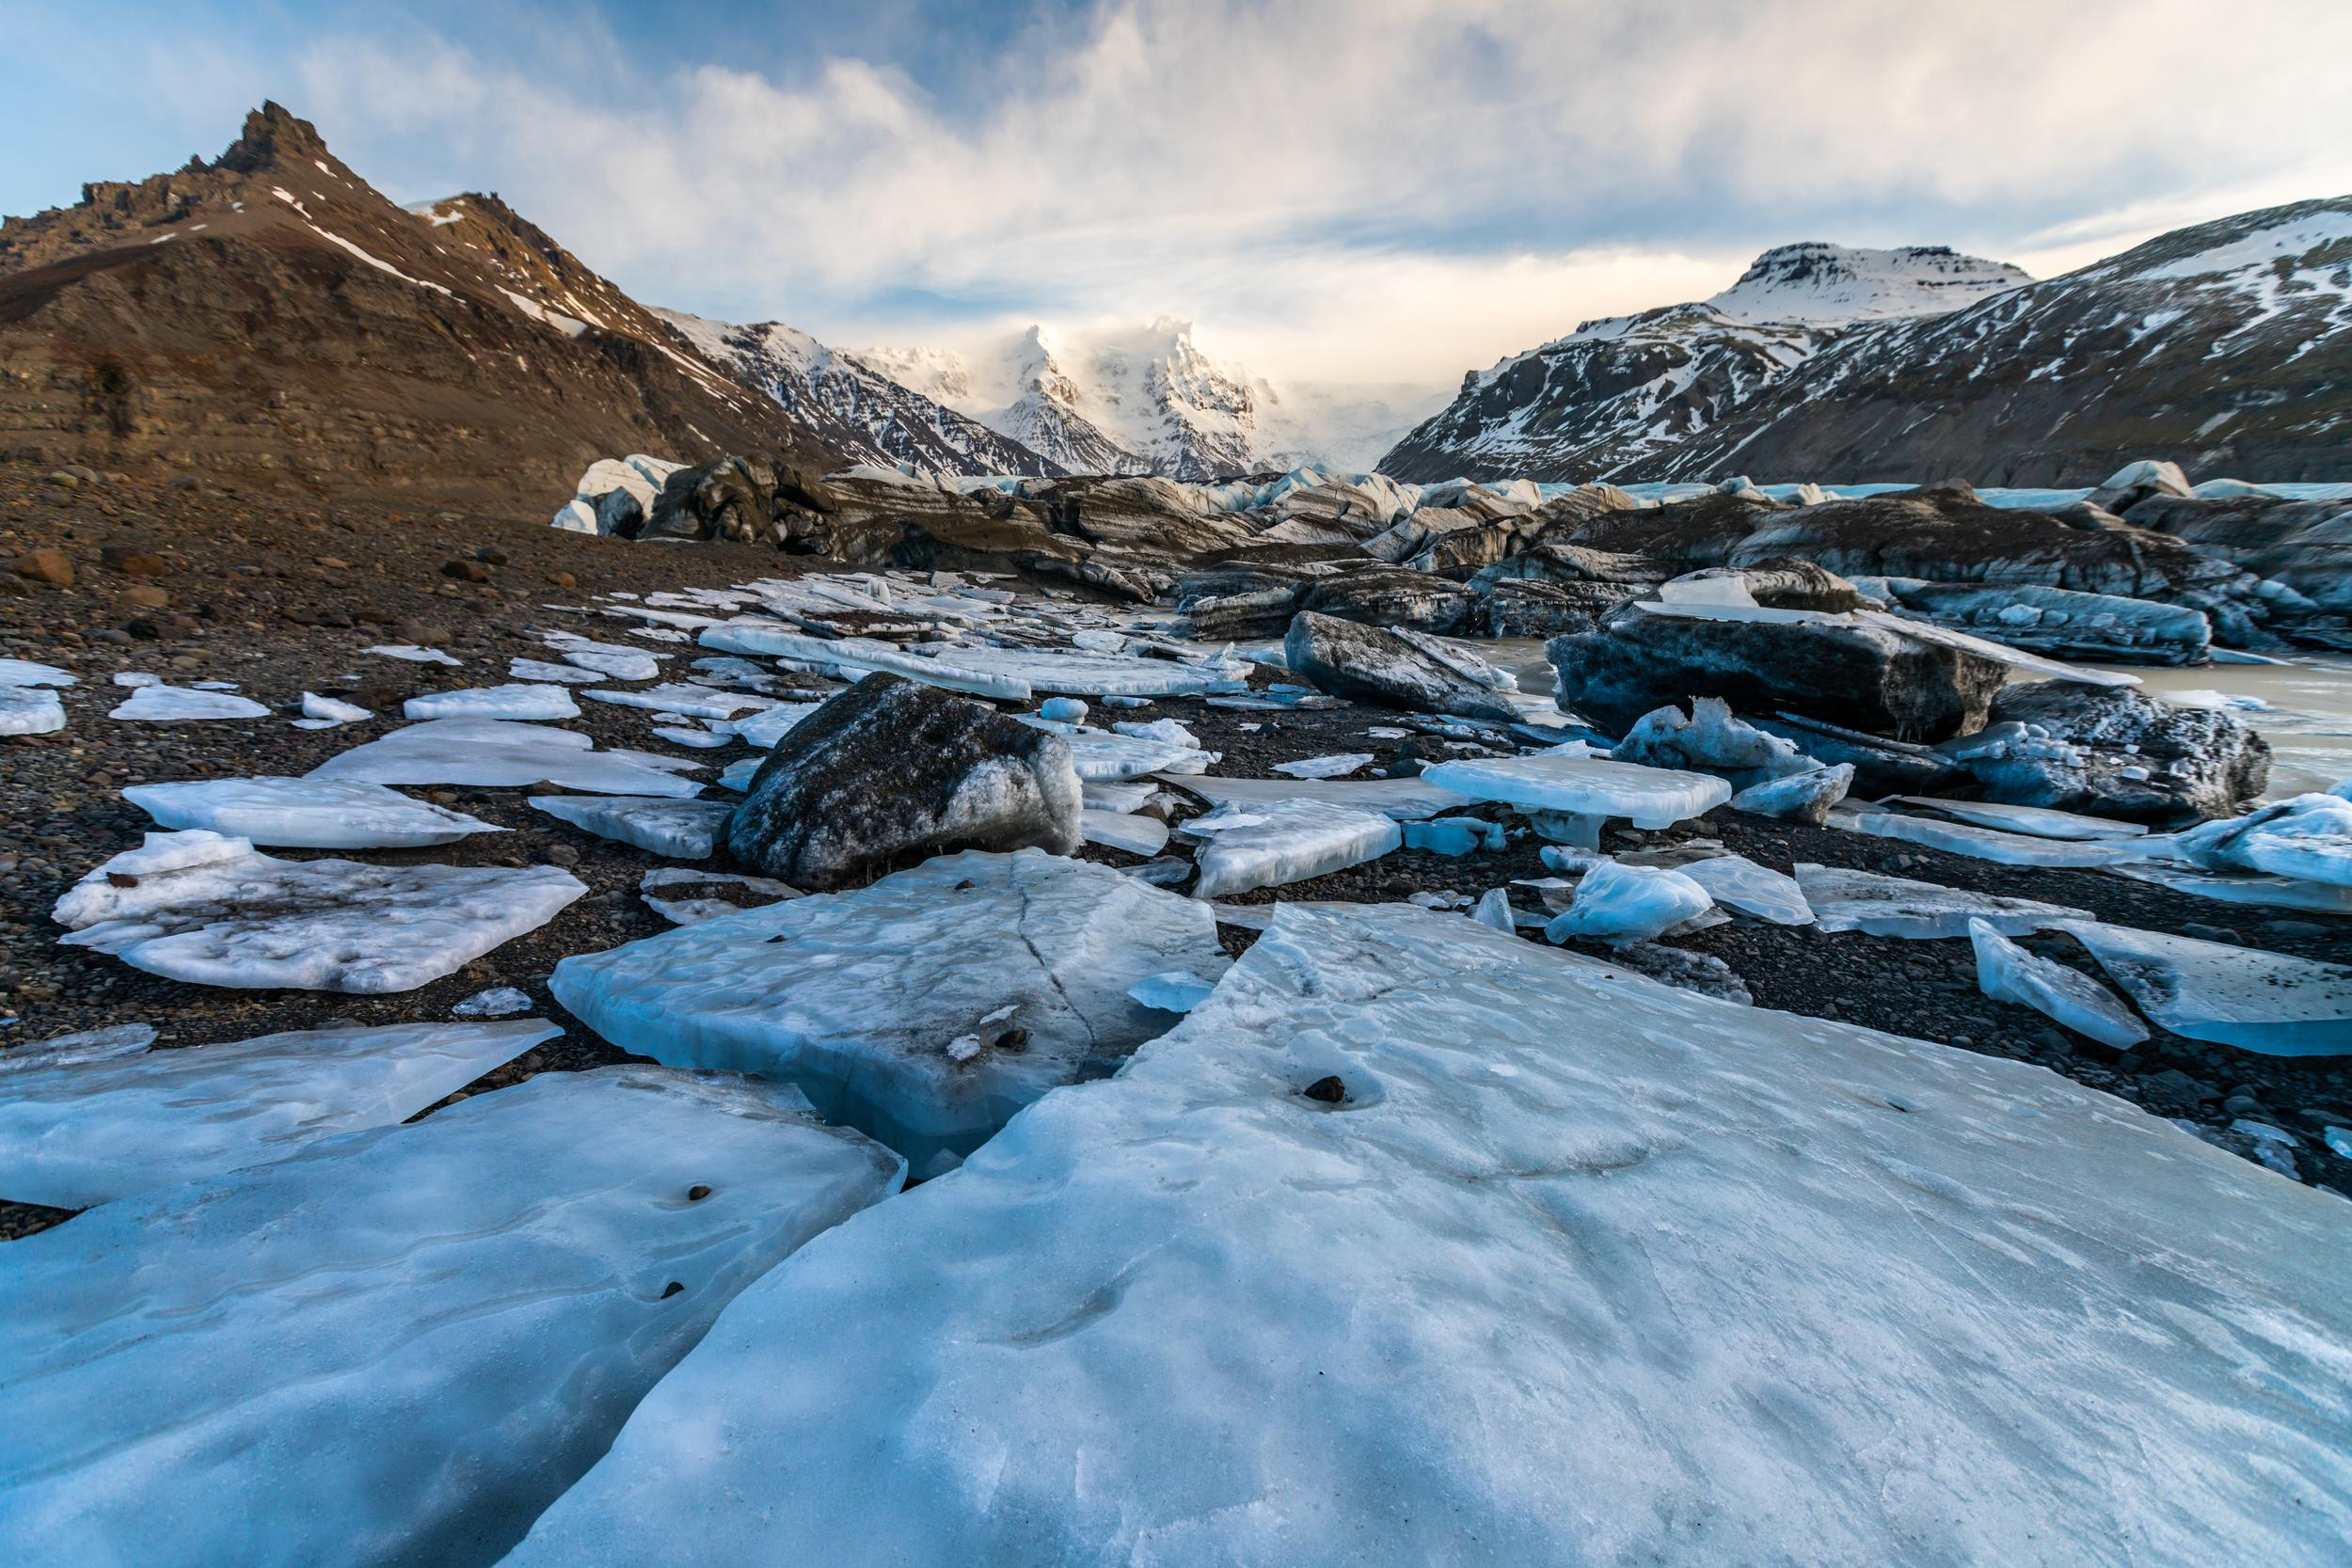 """<p><strong>GOT location:</strong> North of the Wall</p>  <p><strong>Real life location</strong>: Vatnajokull, Iceland</p>  <p>Take a chilly trip to the home of the Wildlings and Jon Snow's first loveYgritte.</p>  <p><a href=""""https://fave.co/2PgUeJO""""><strong>Book your trip.</strong></a></p>"""